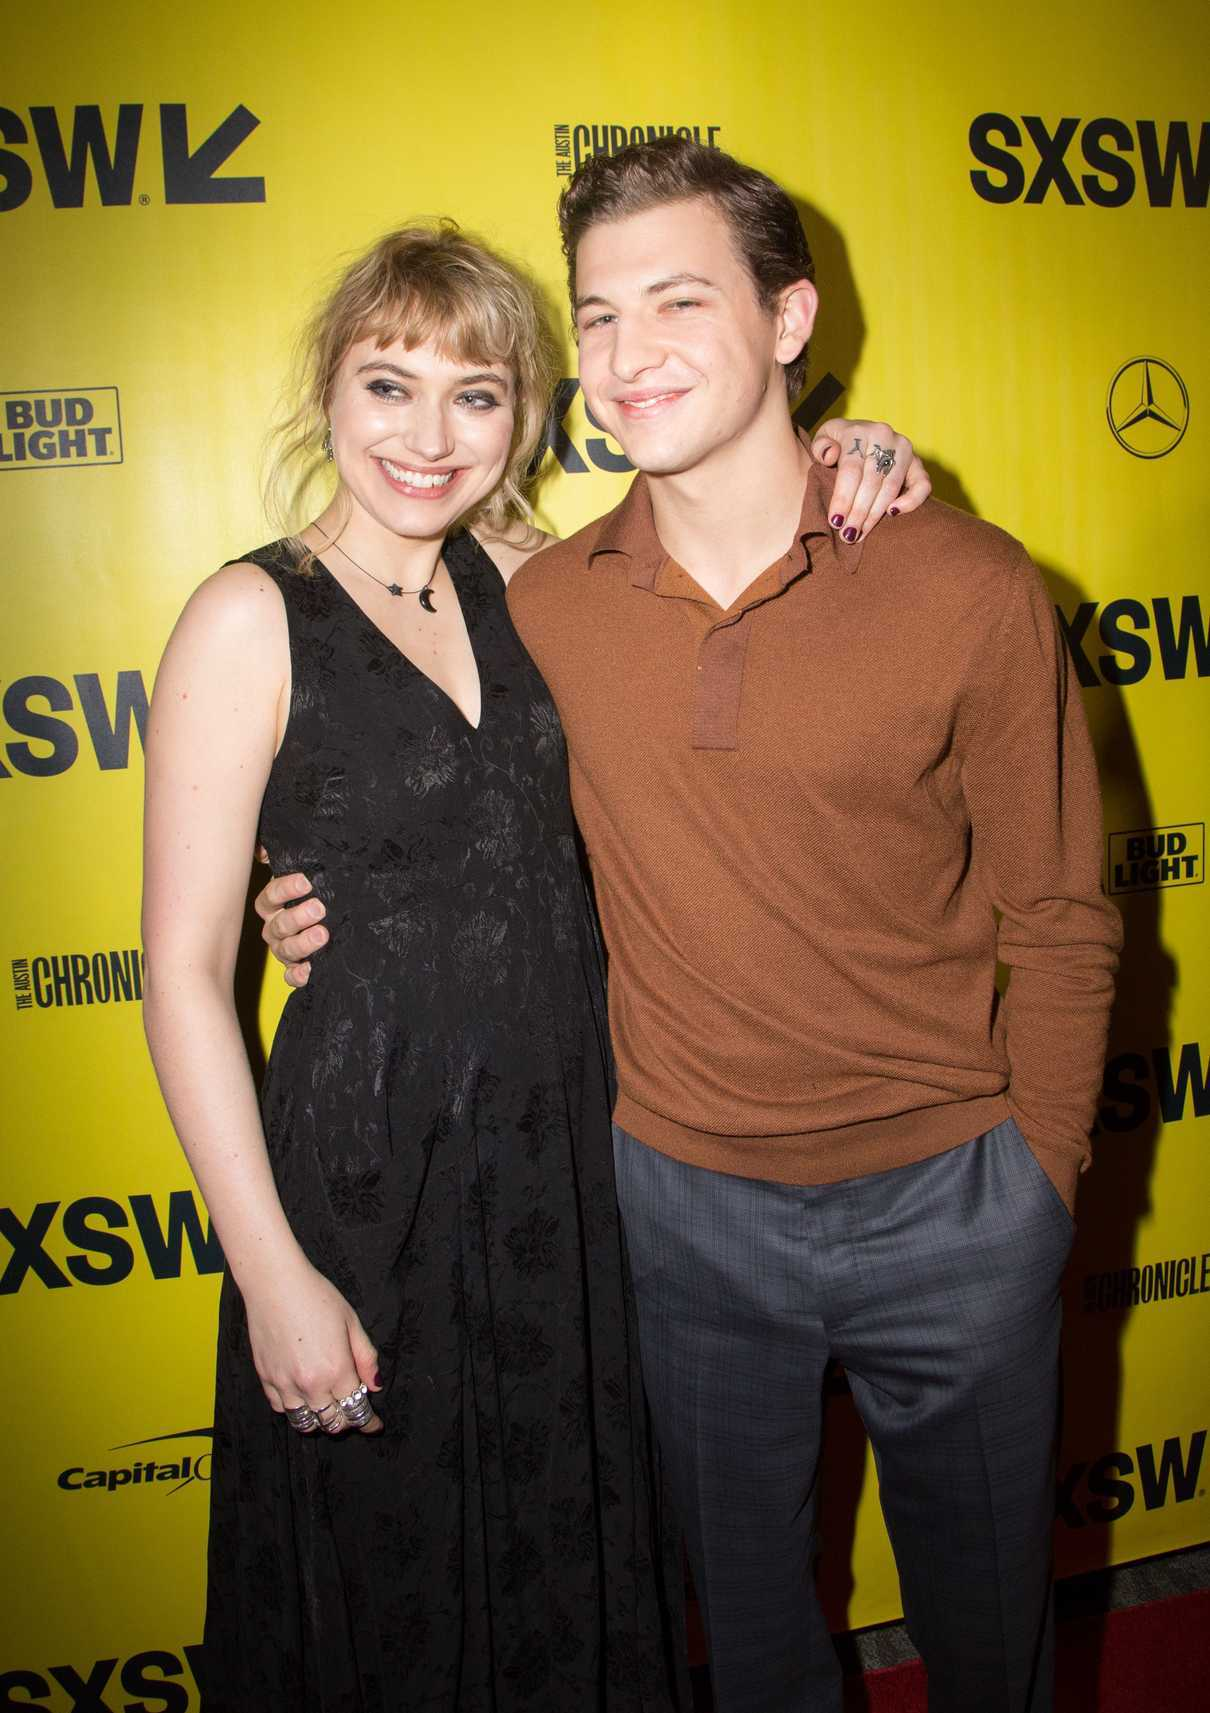 Imogen Poots at the Friday's Child Premiere During 2018 SXSW Festival in Austin 03/11/2018-4